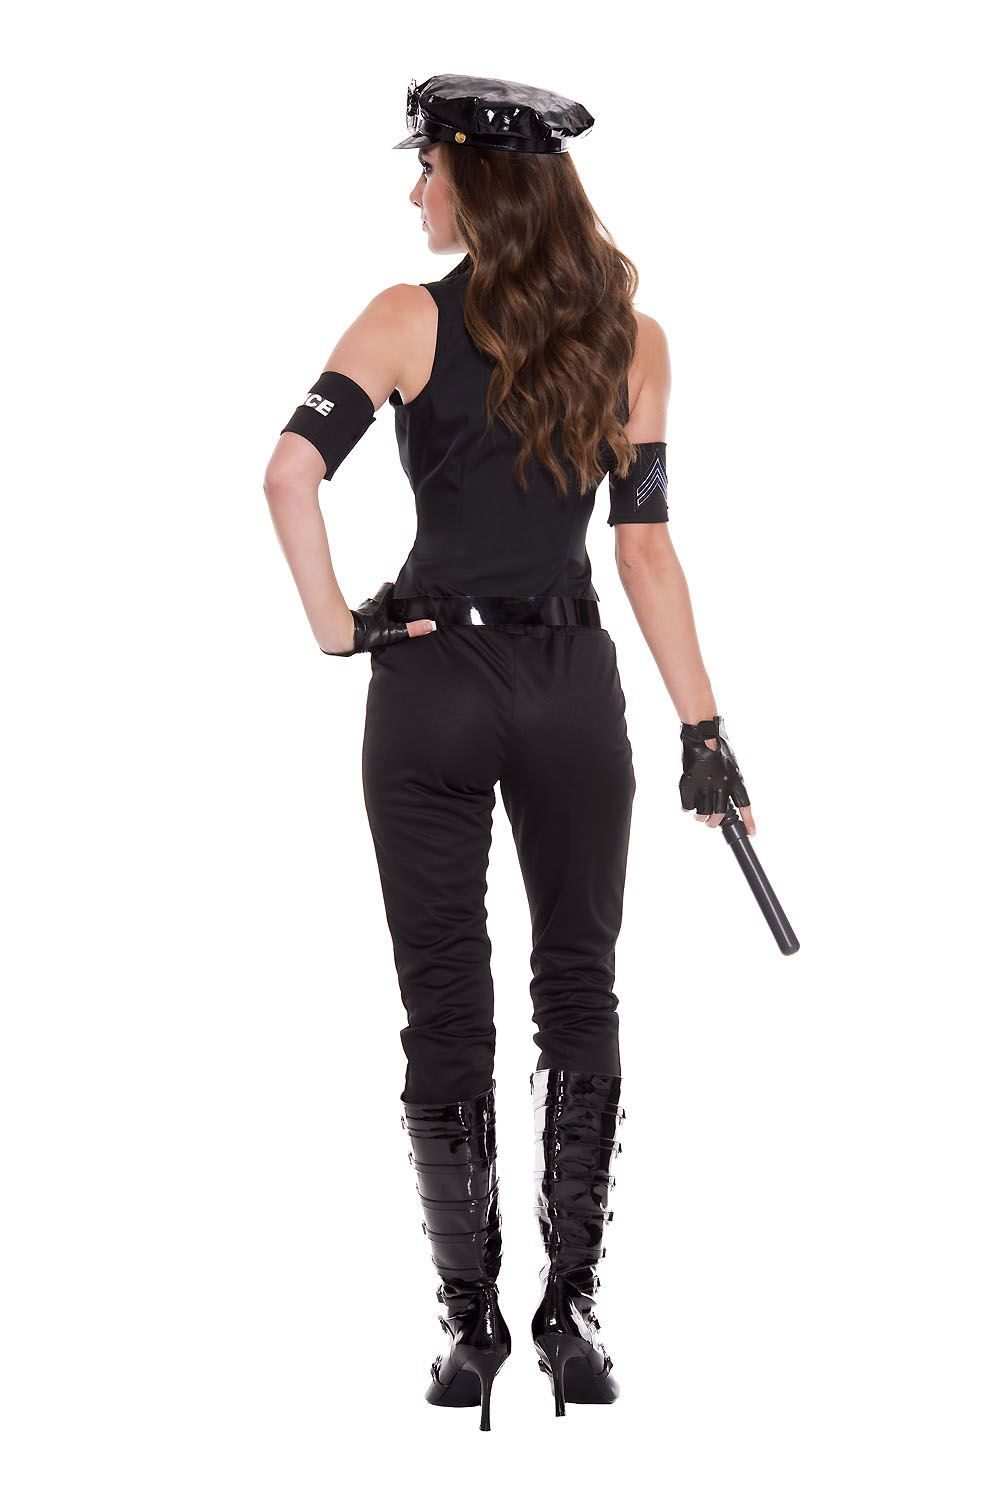 Adult Cops Bombshell Woman Police Costume 49 99 The Costume Land